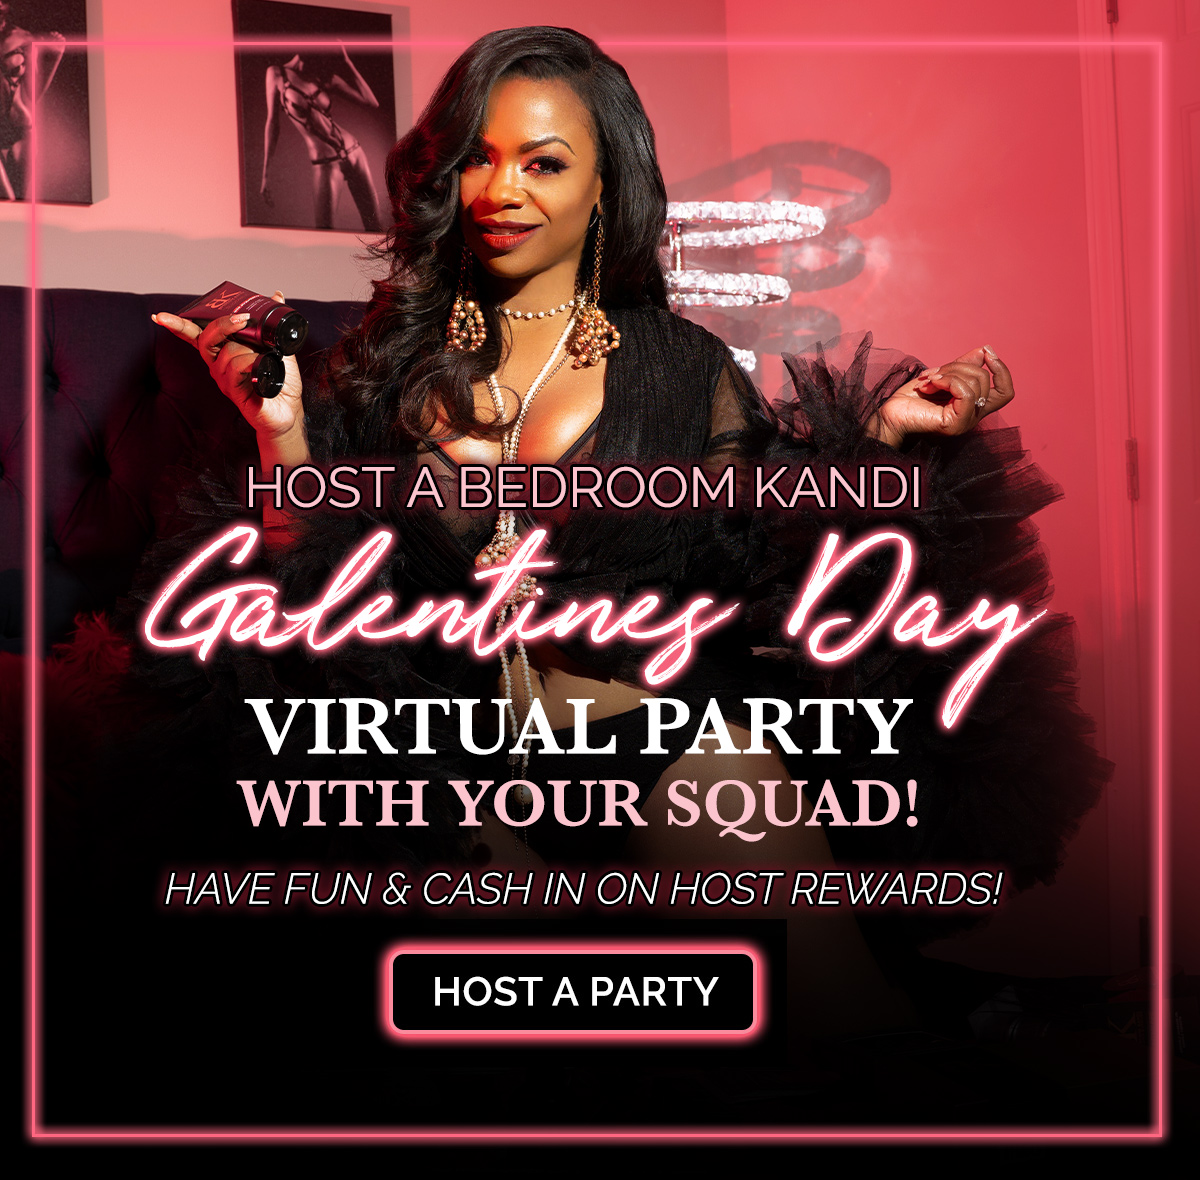 Party with Bedroom Kandi from Home This Valentine's Day